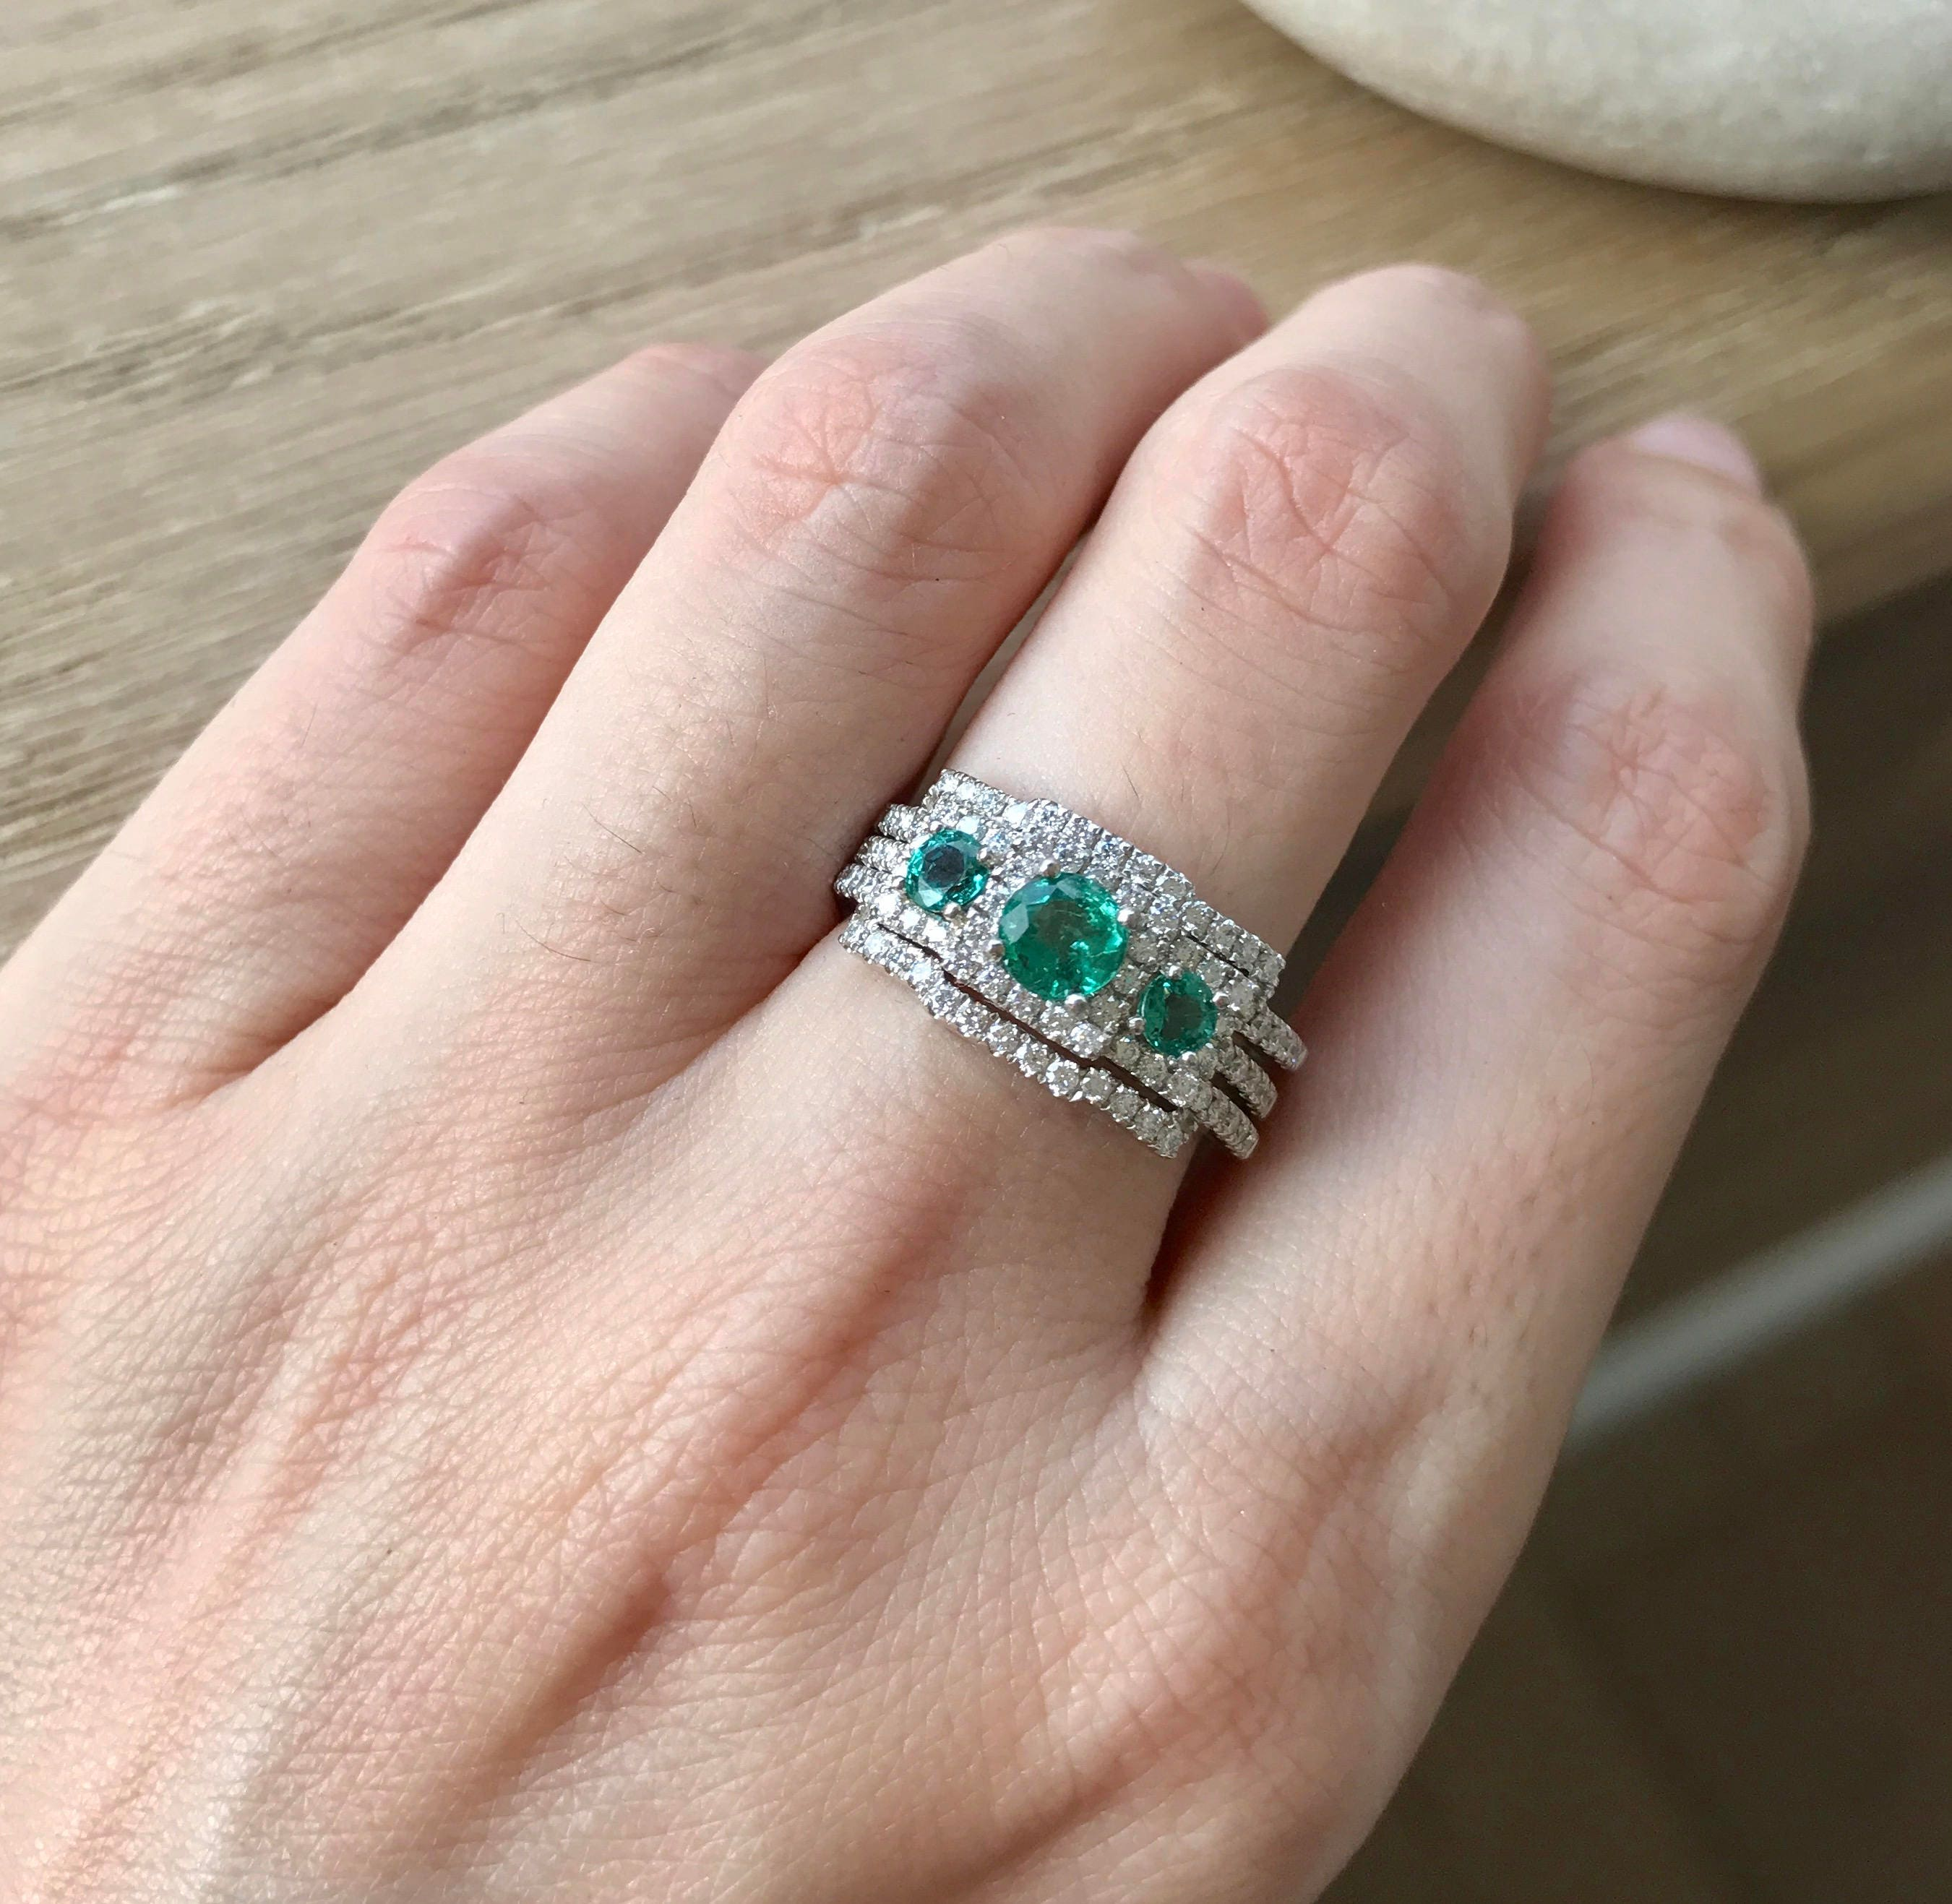 Belesas speciliazes in the finest handmade jewelry by Belesas